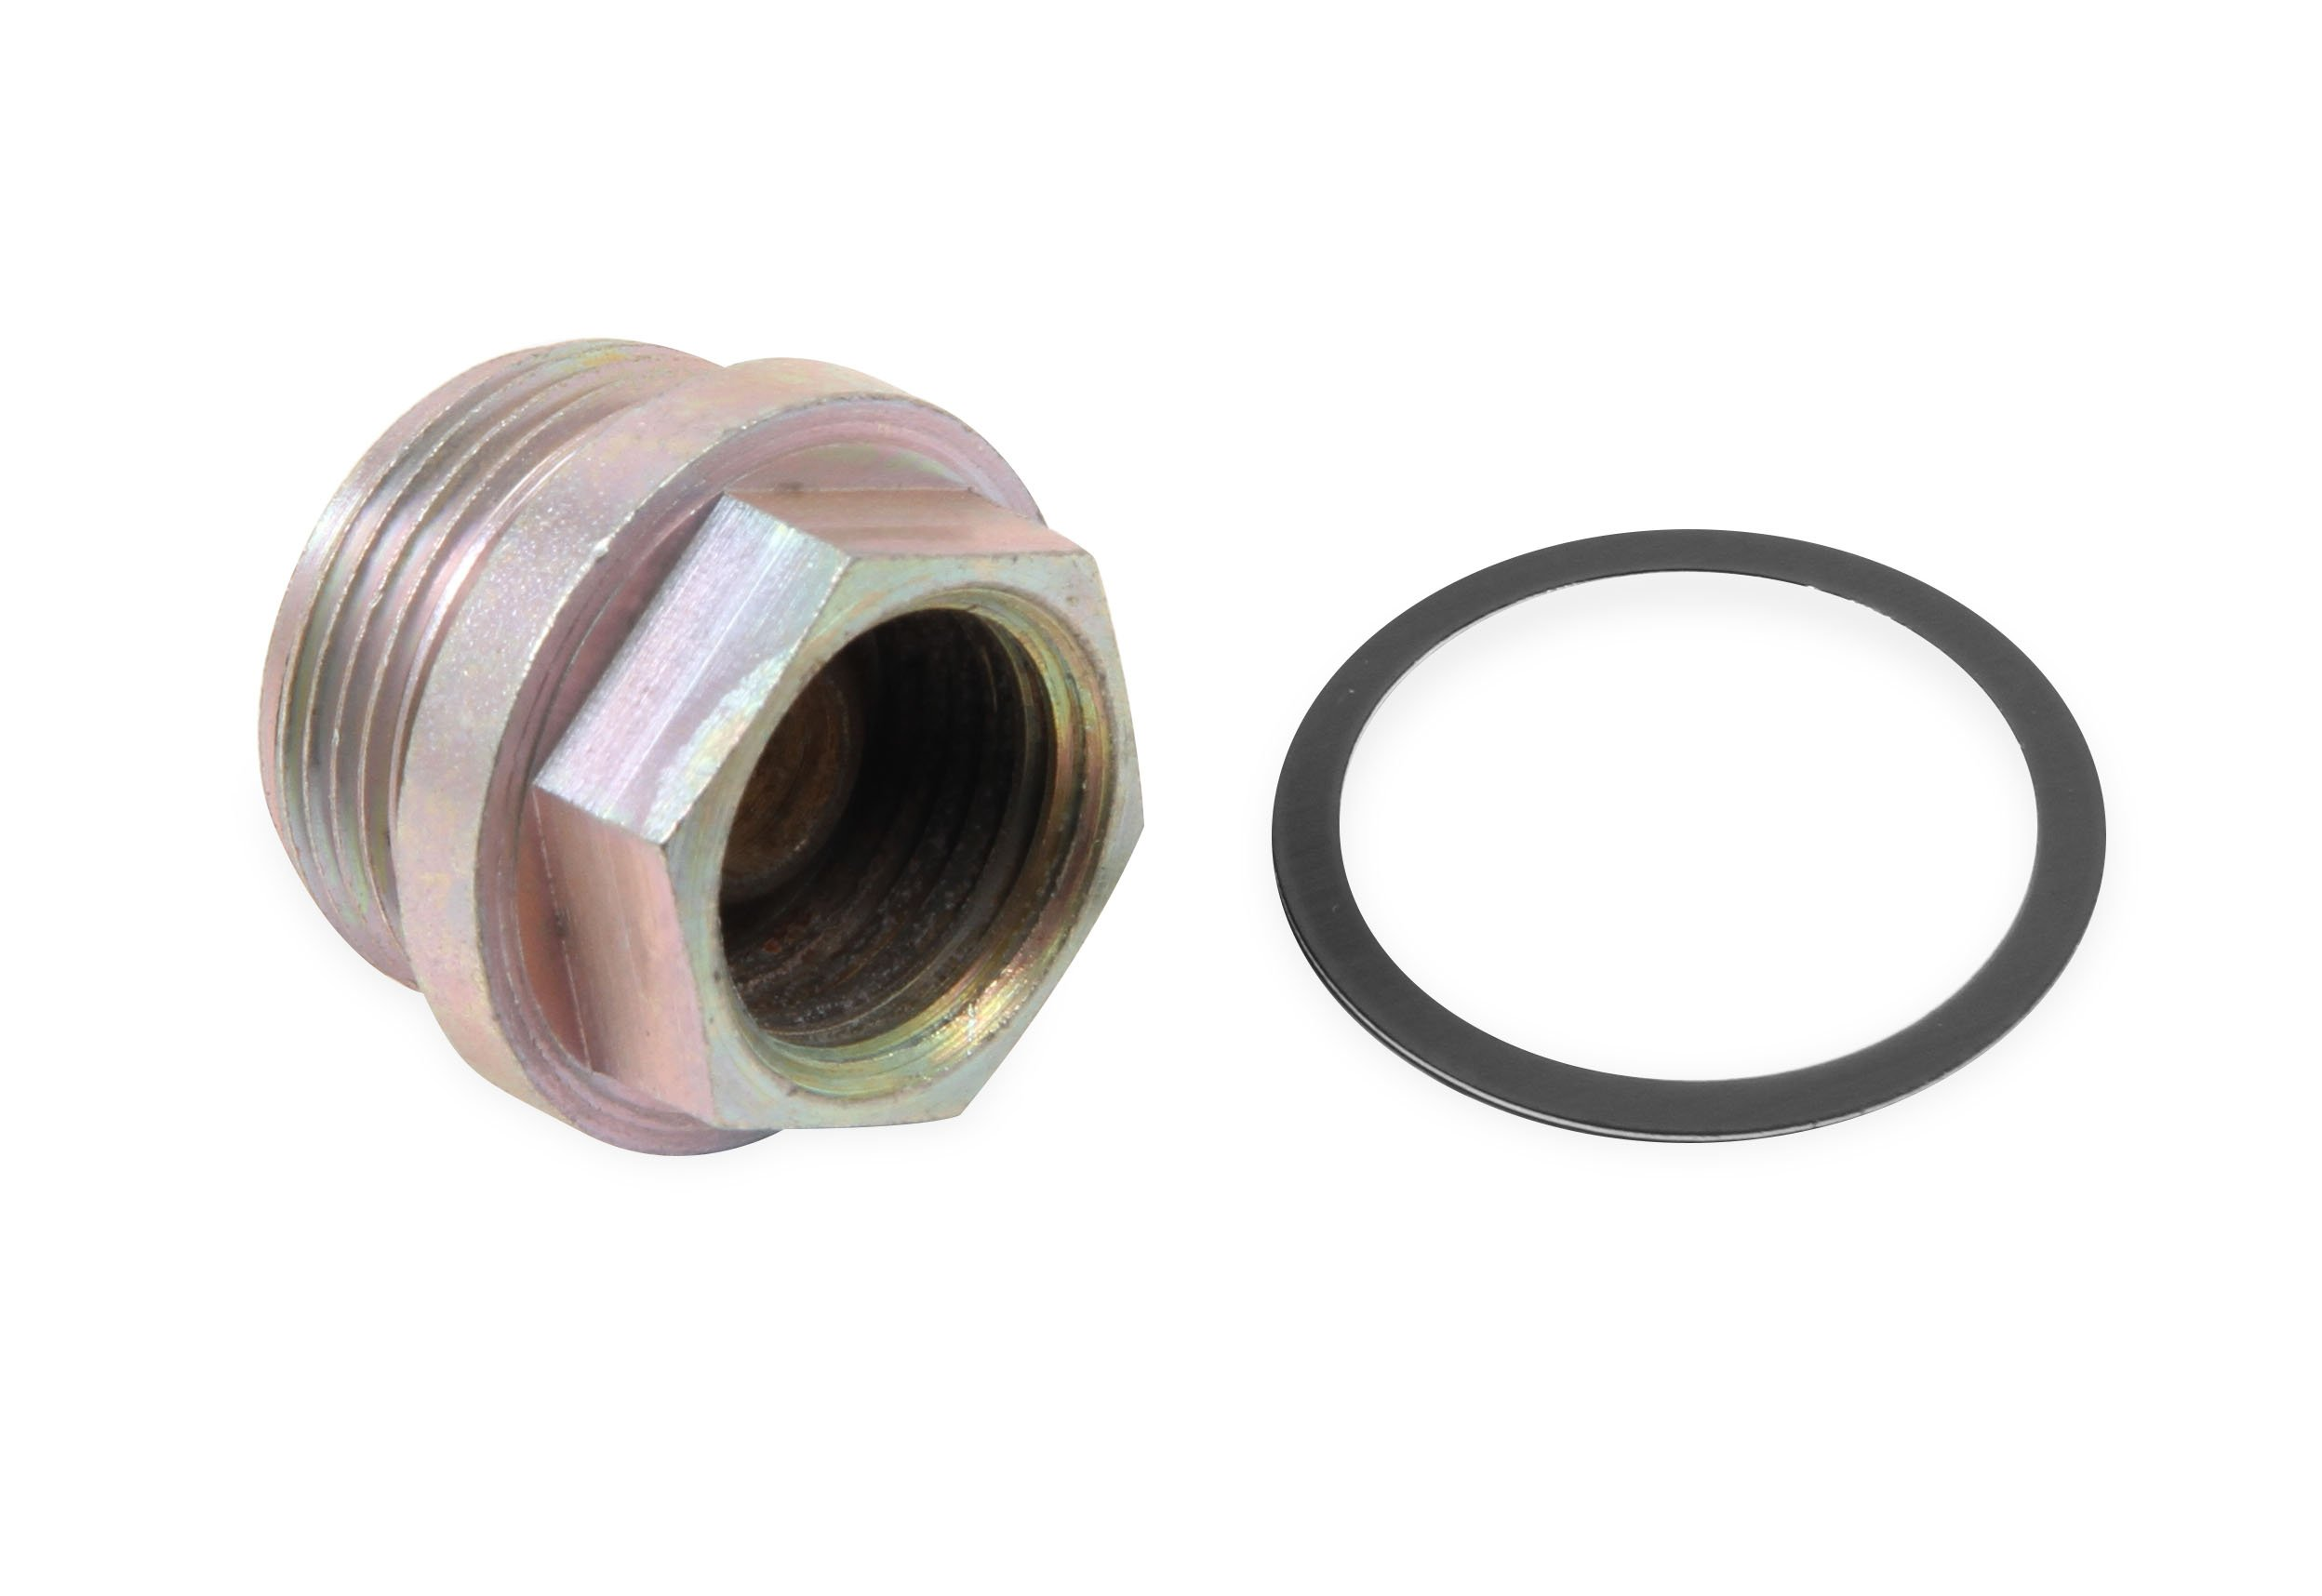 Holley 26-27 Fuel Fitting